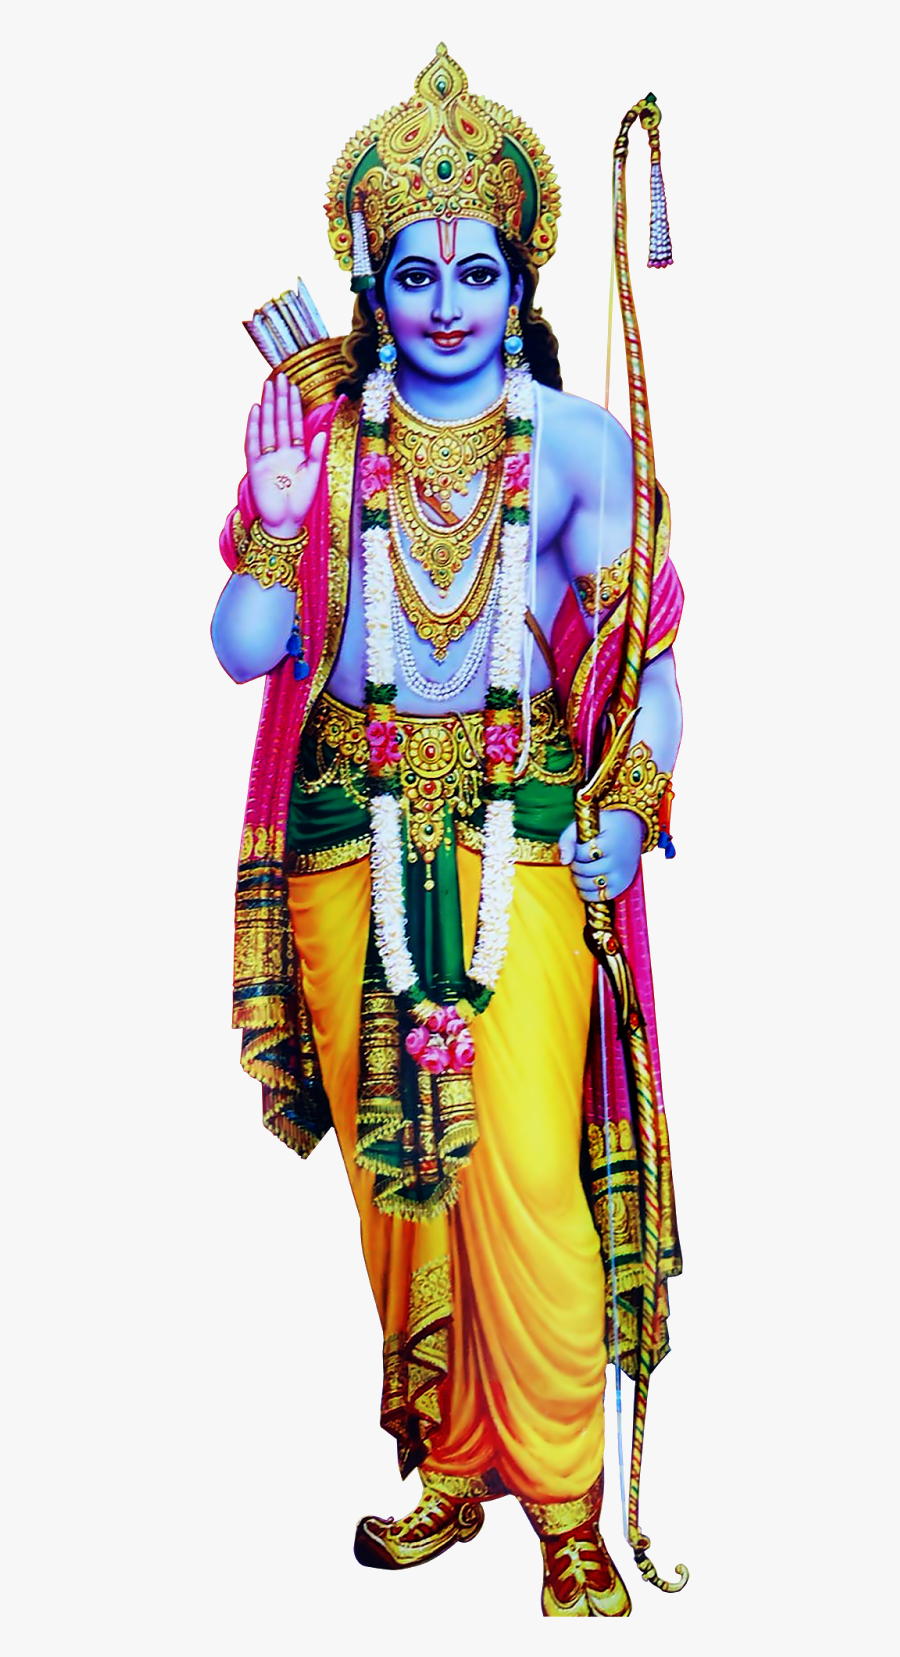 Lord Rama Png, Transparent Clipart